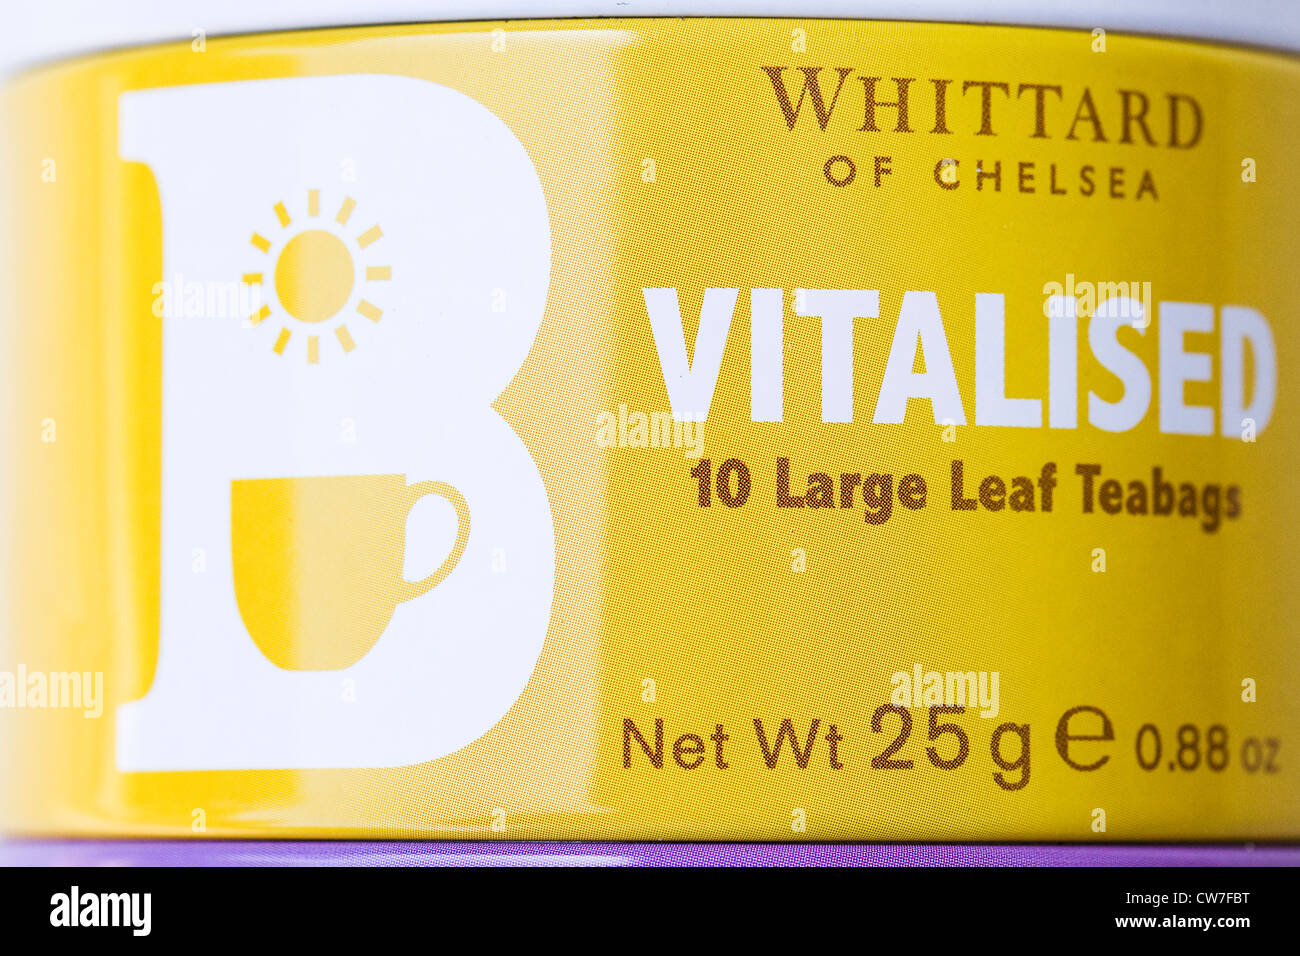 Colourful Whittard tea tins. - Stock Image